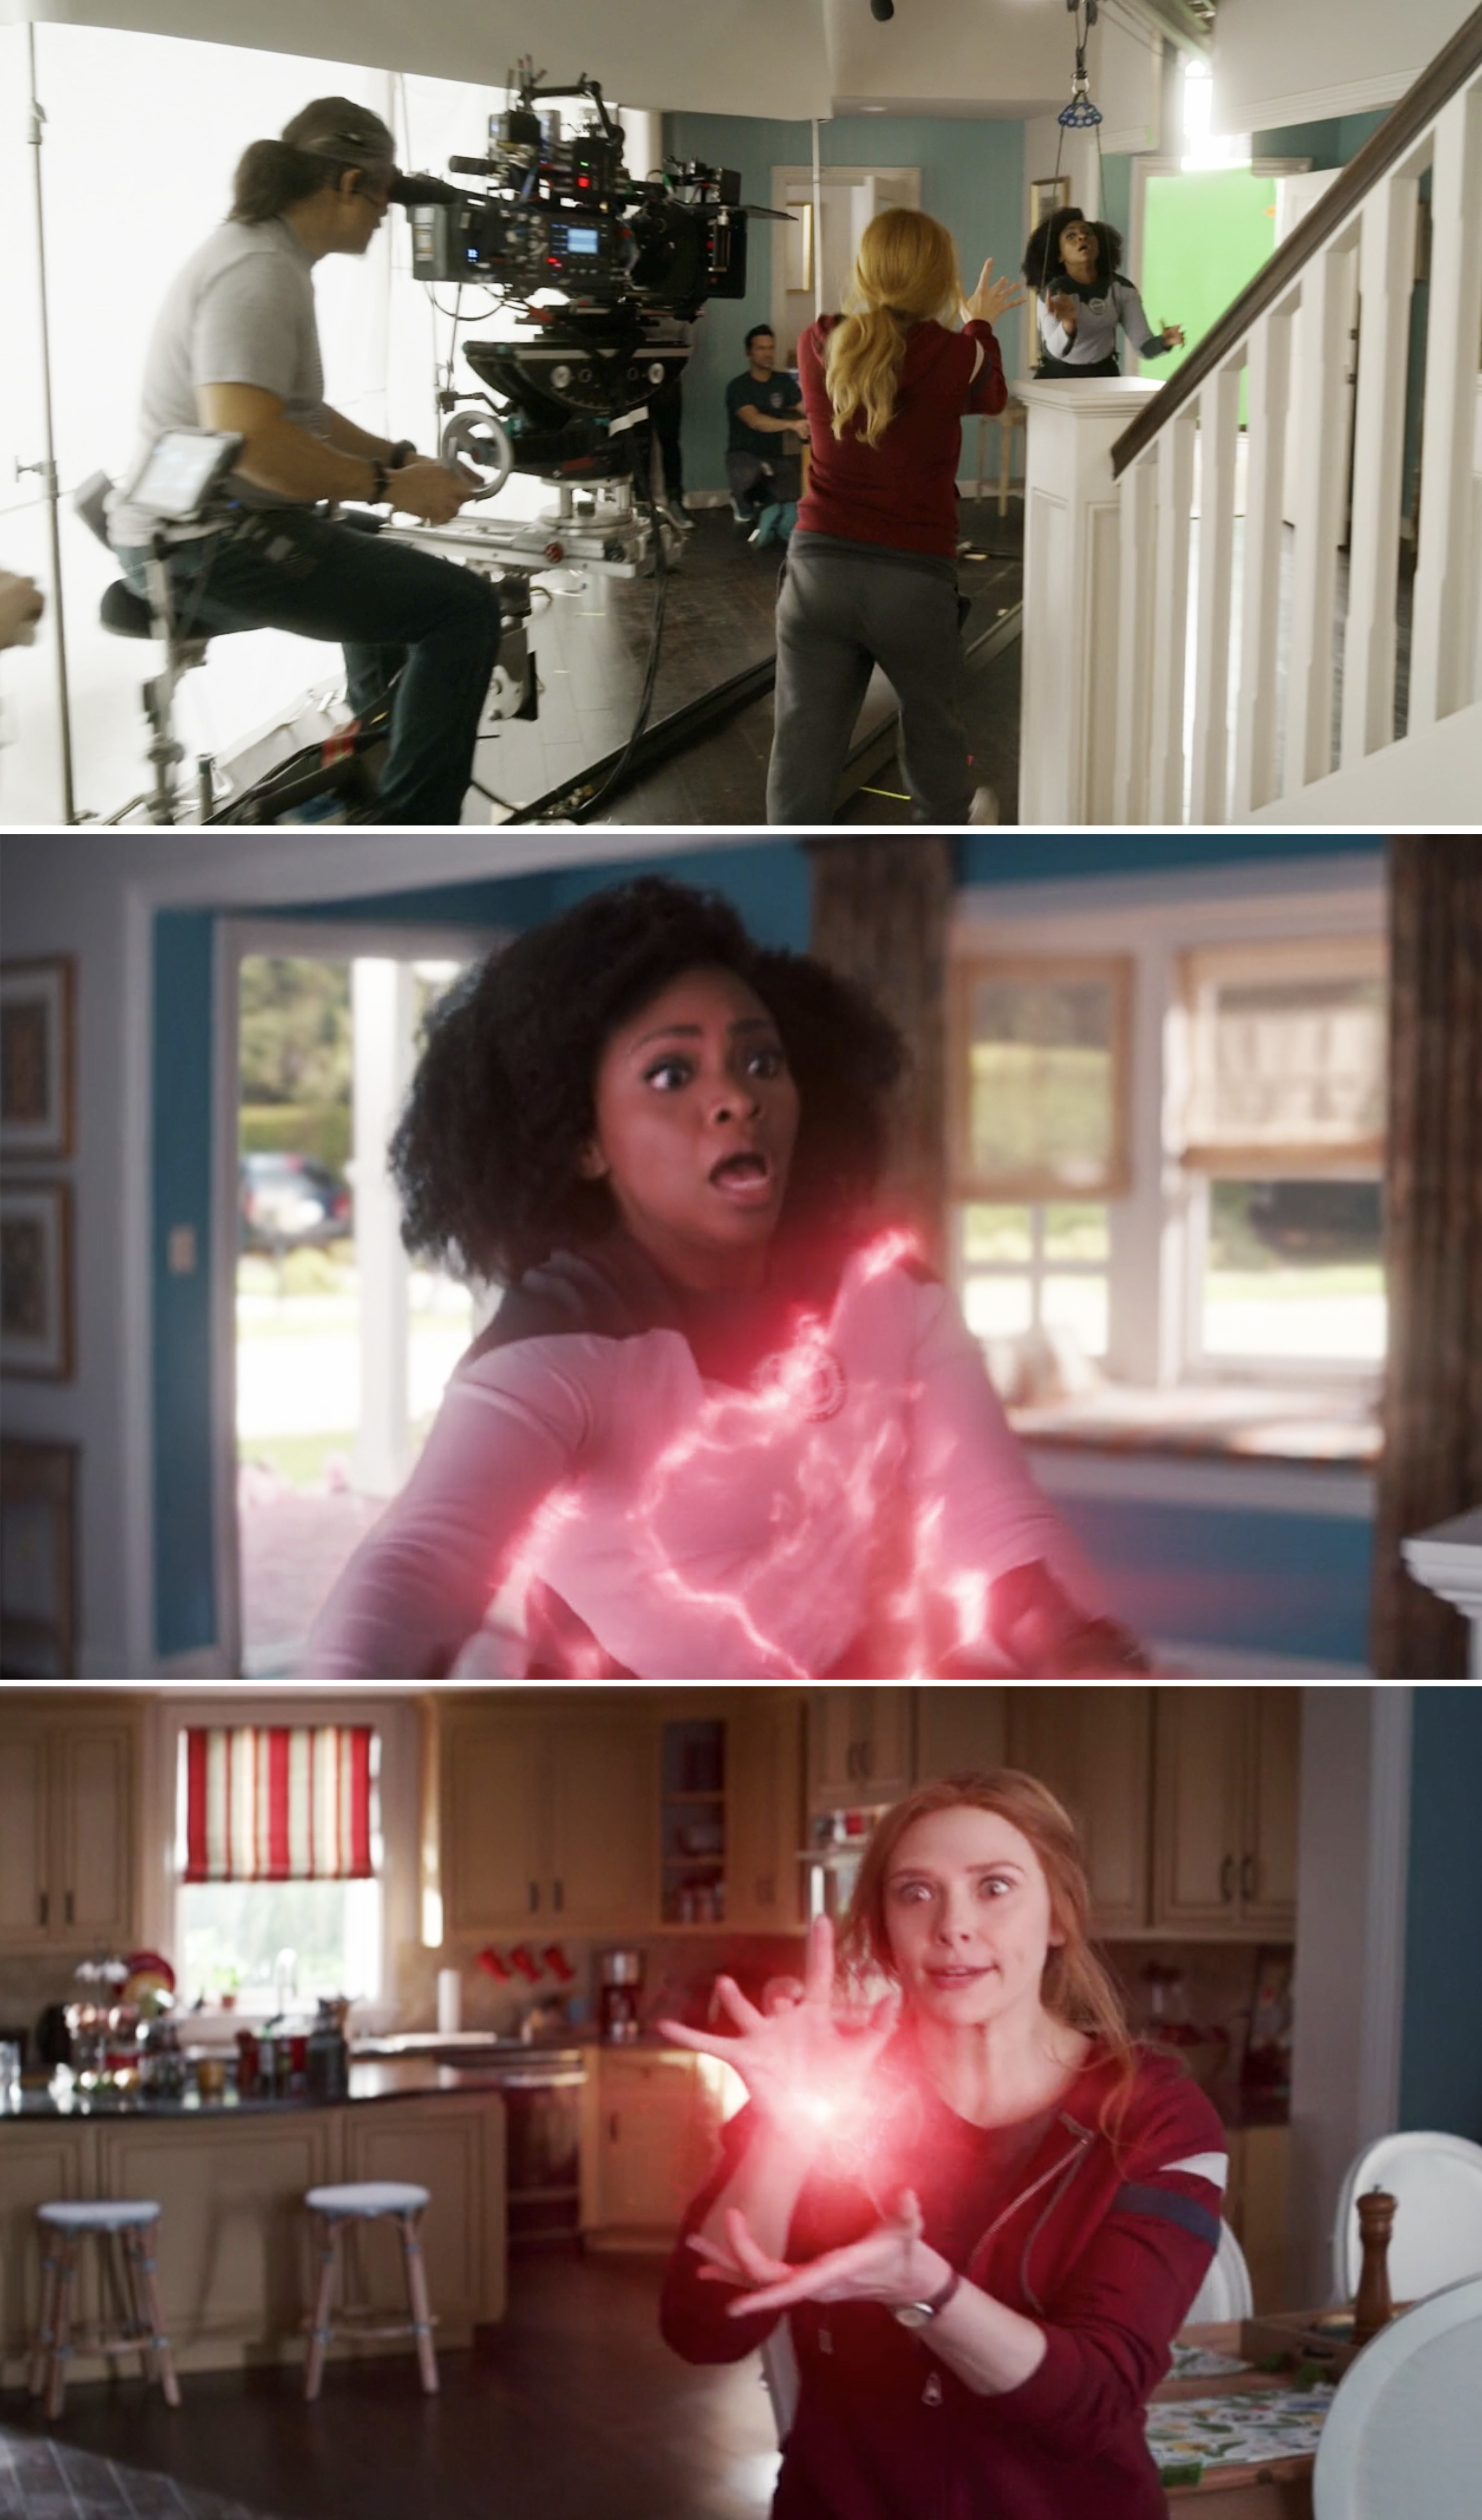 Wanda throwing Monica out of her home using magic before and after visual effects